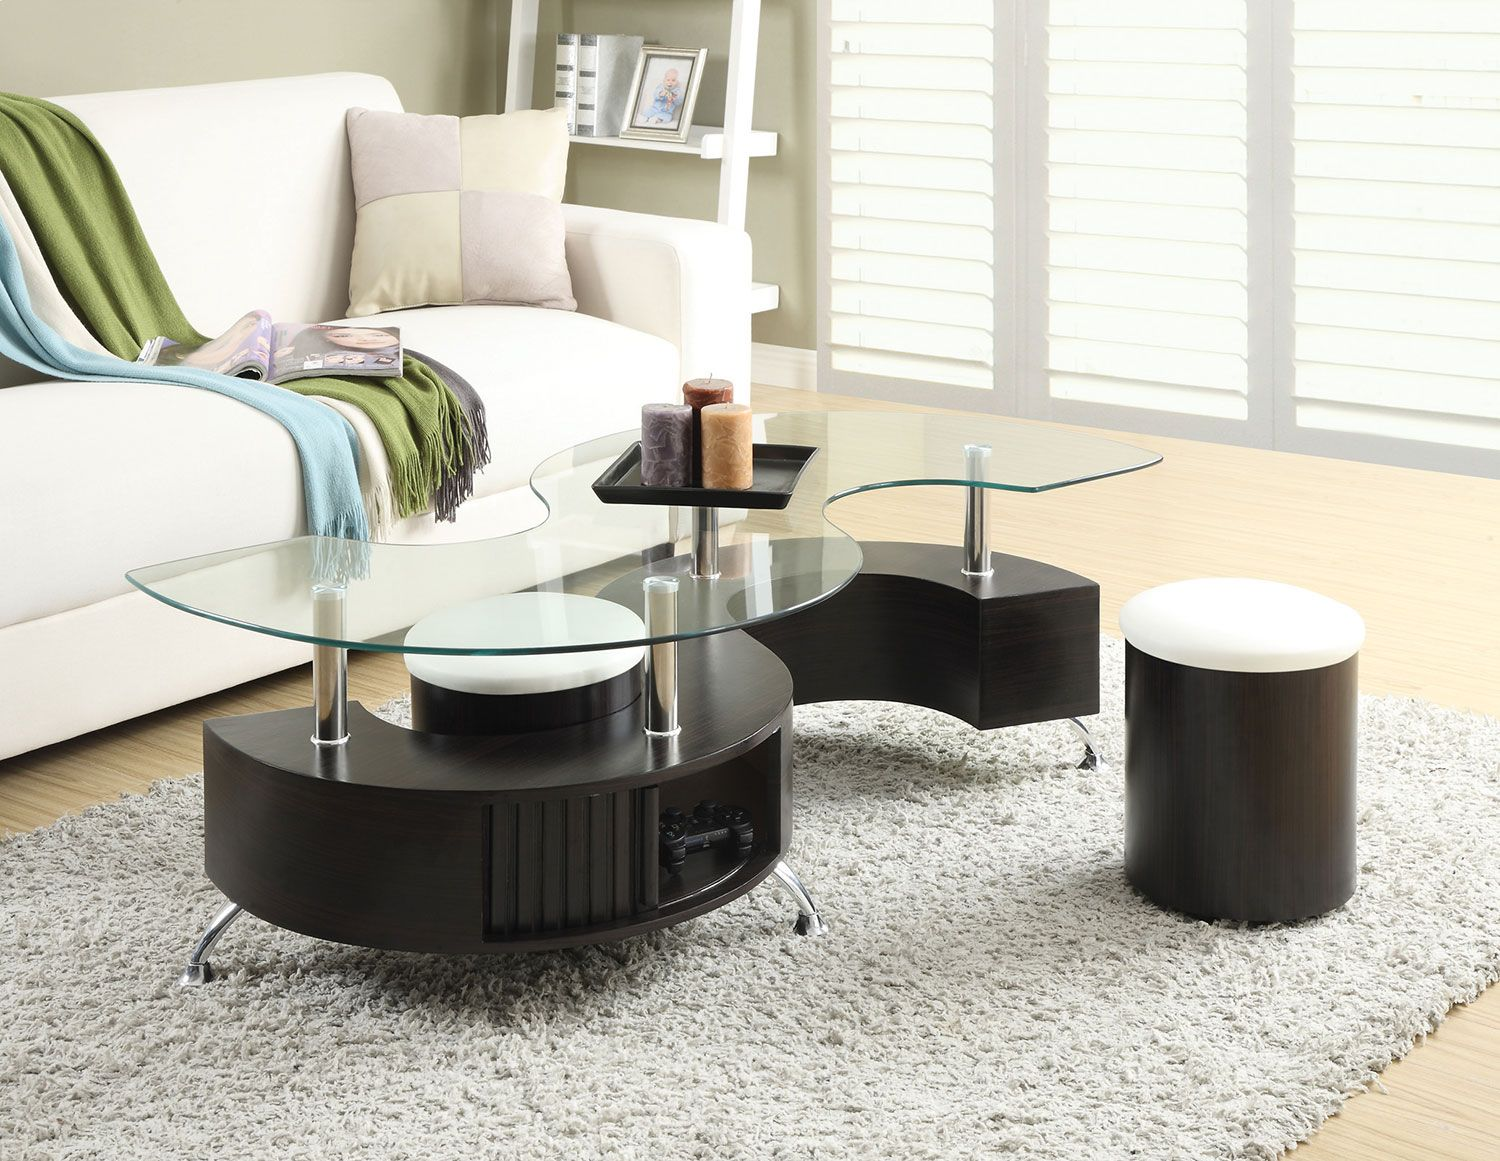 silver glass living room furniture%0A Storage and seating come standard with this sublime Seradala coffee table  and two ottomans set